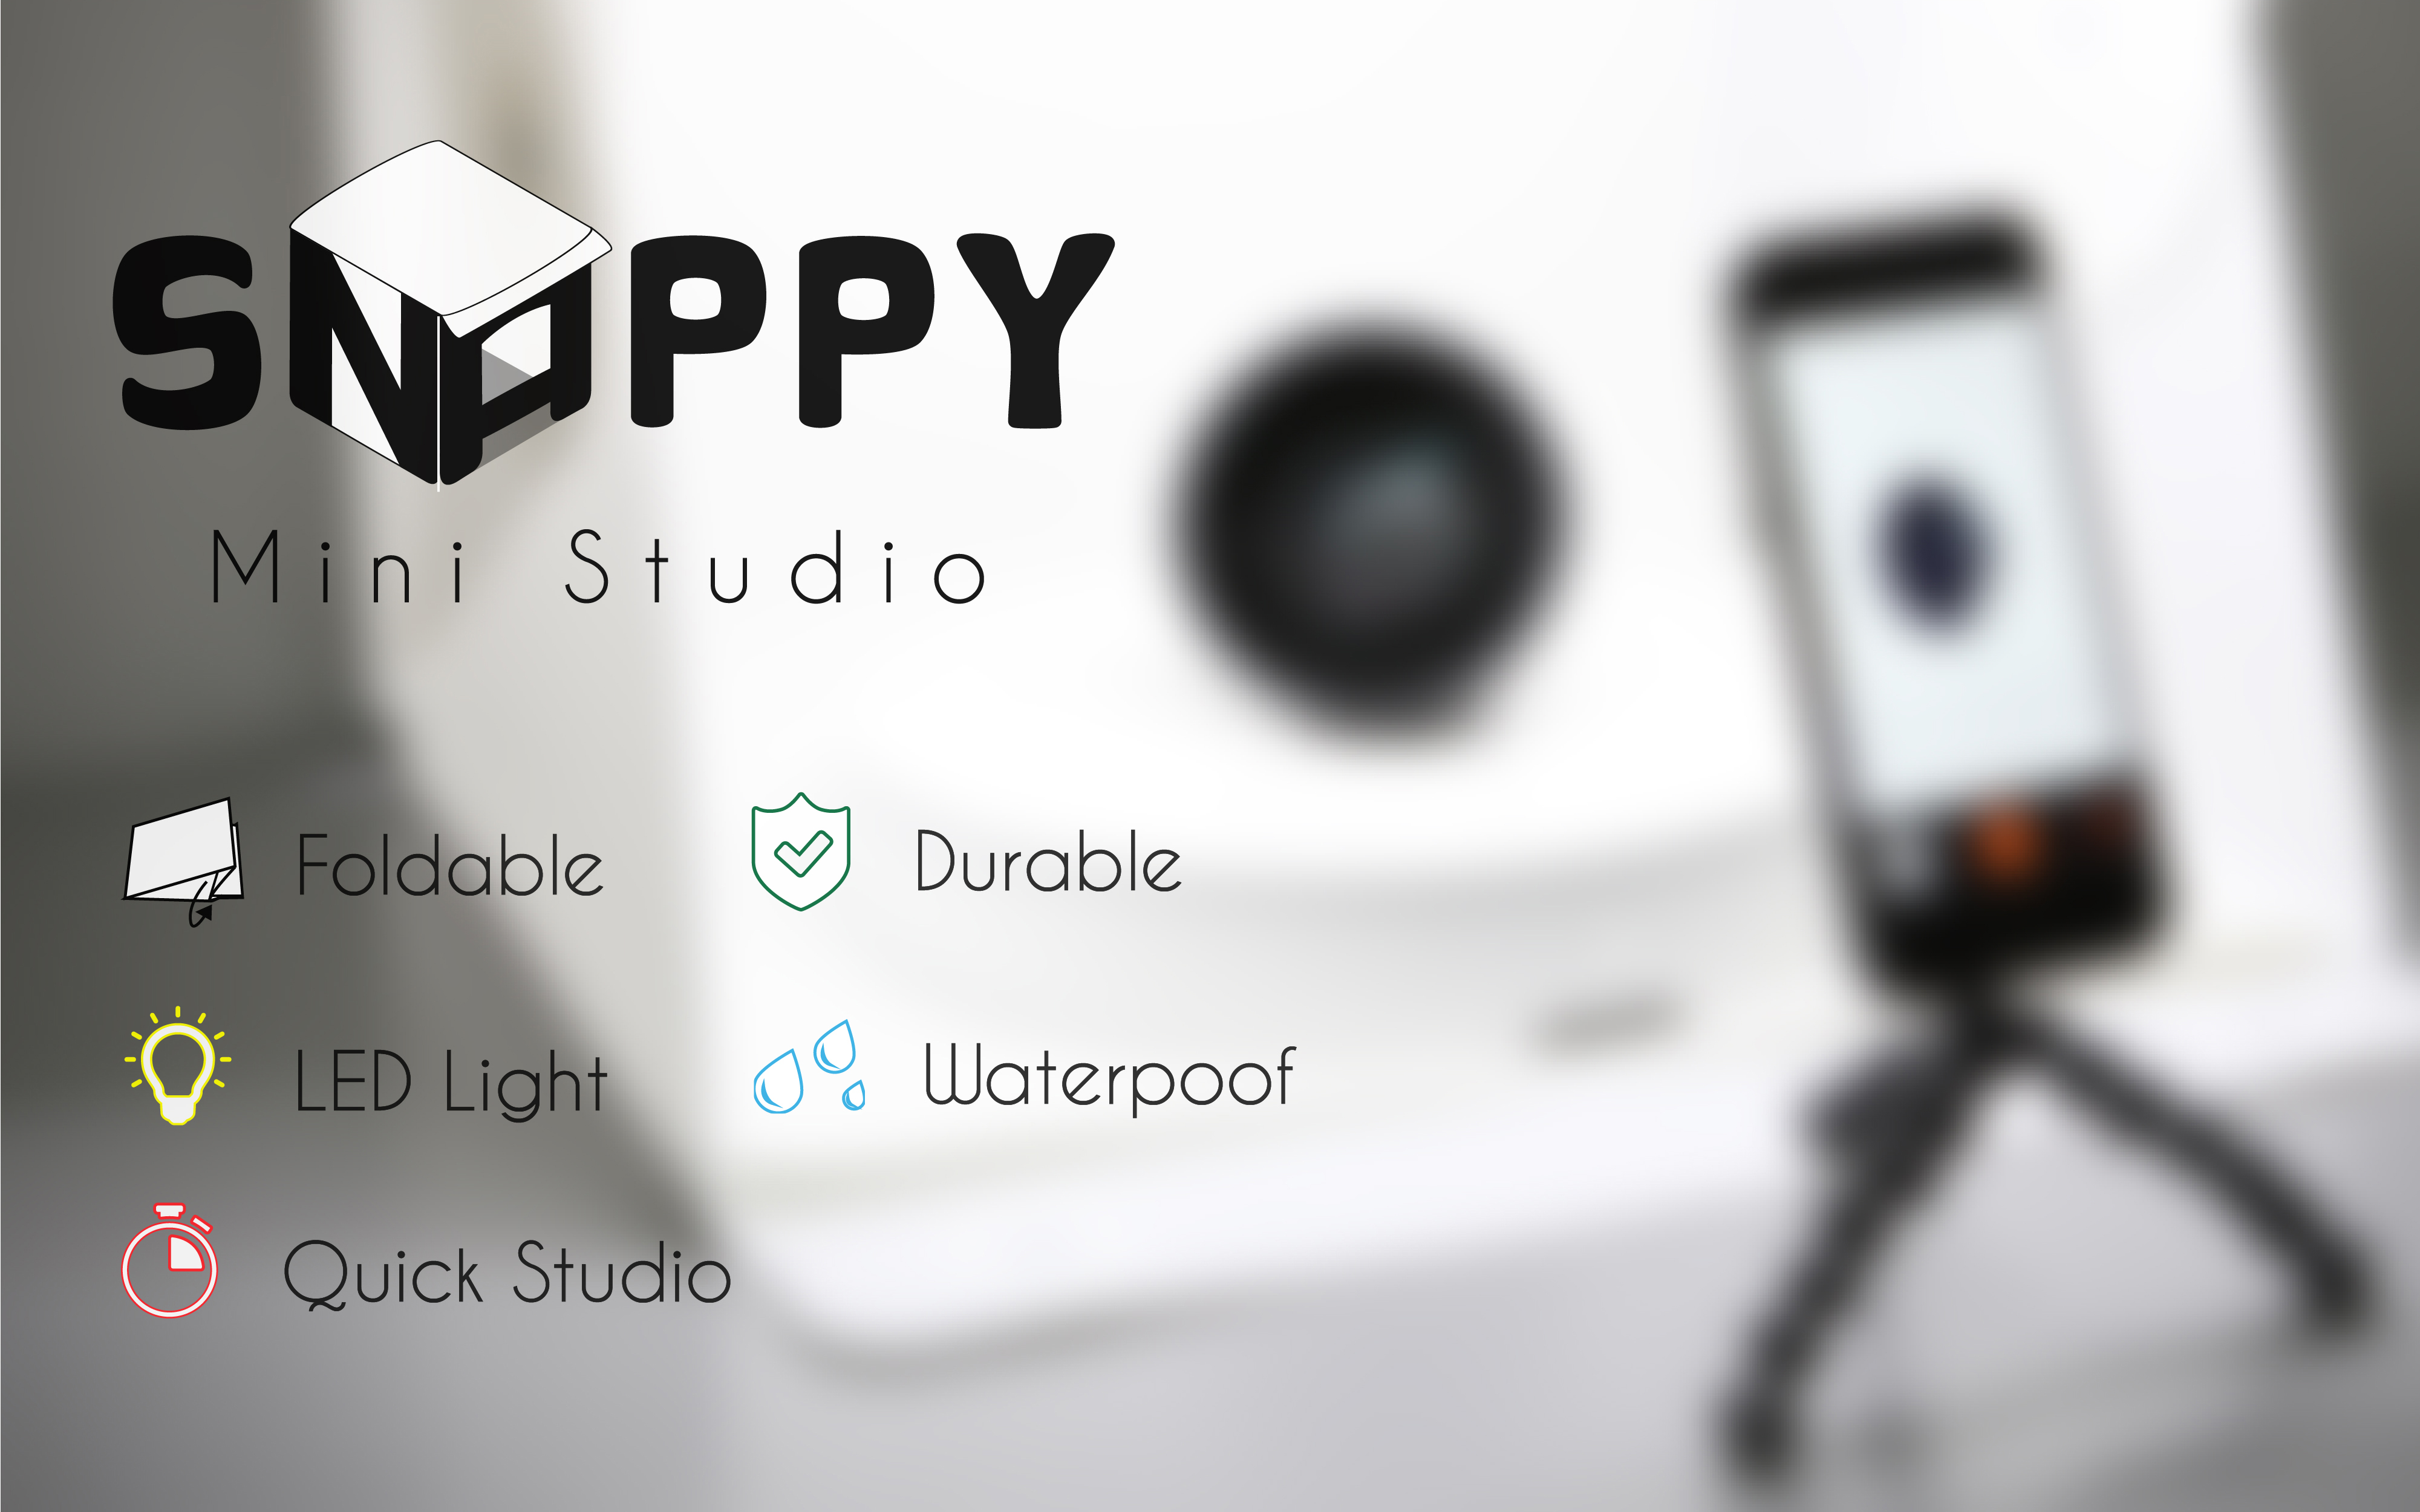 Snappy Mini Studio